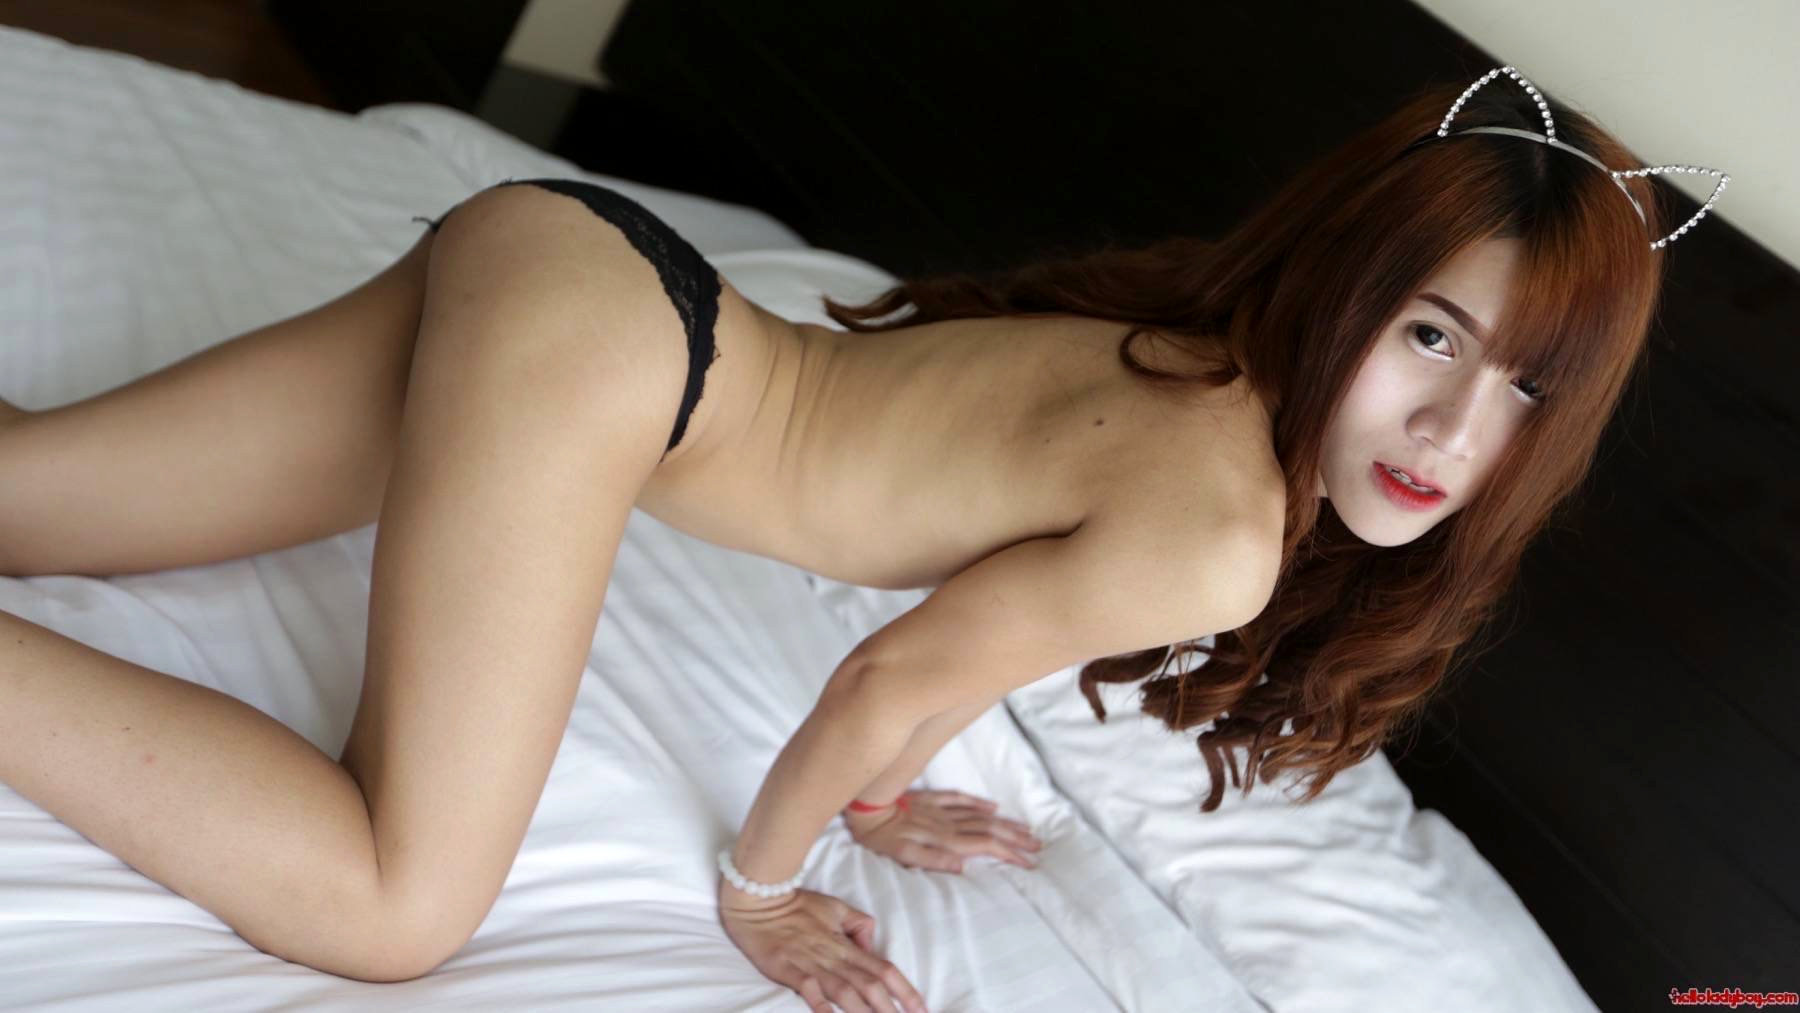 18 Year Old Nasty Asian T-Girl With Enormous Tits Does A Striptease